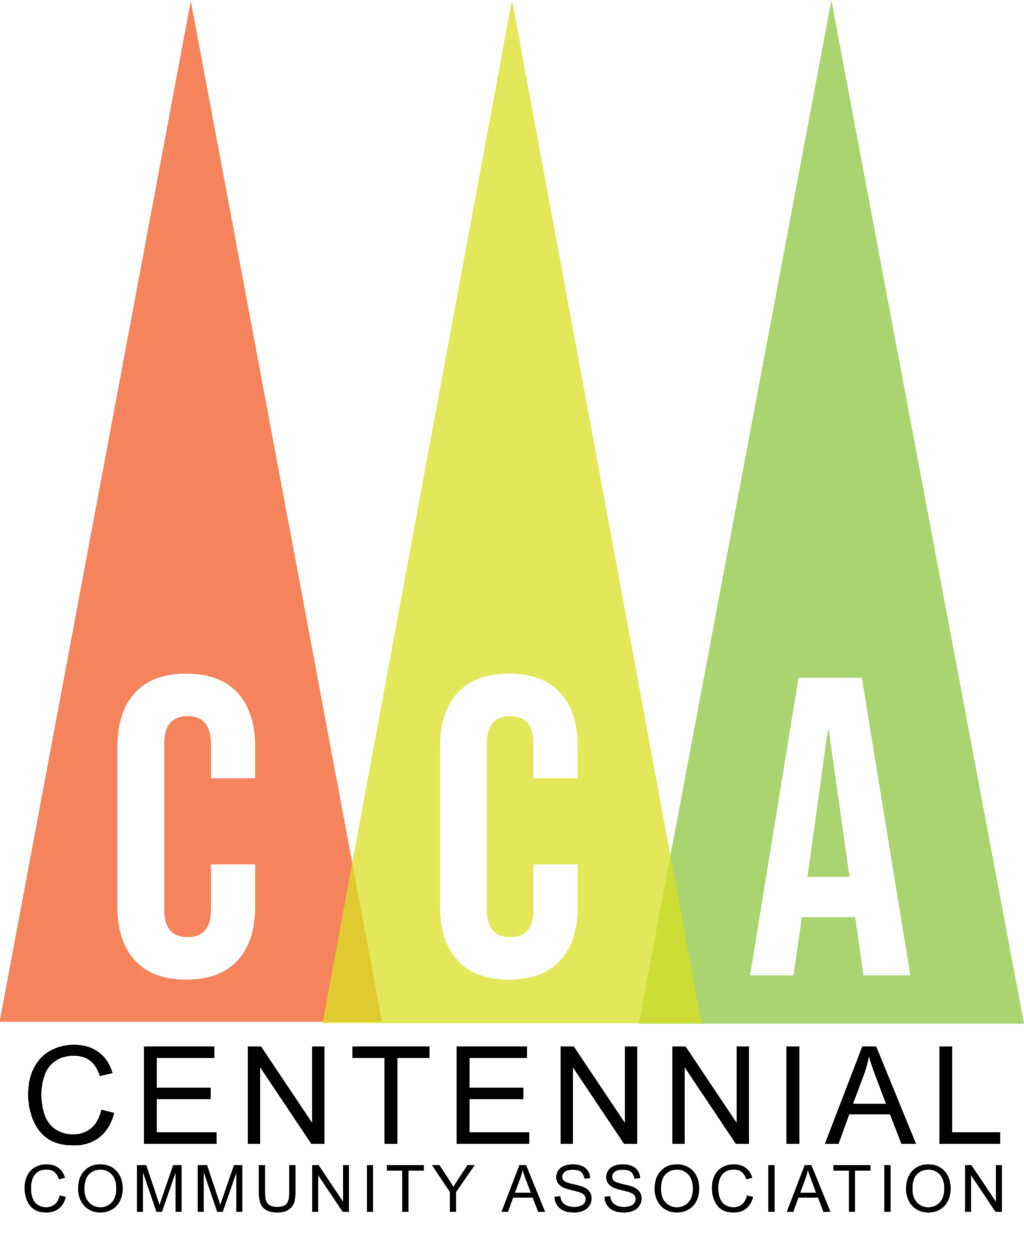 Centennial Community Association